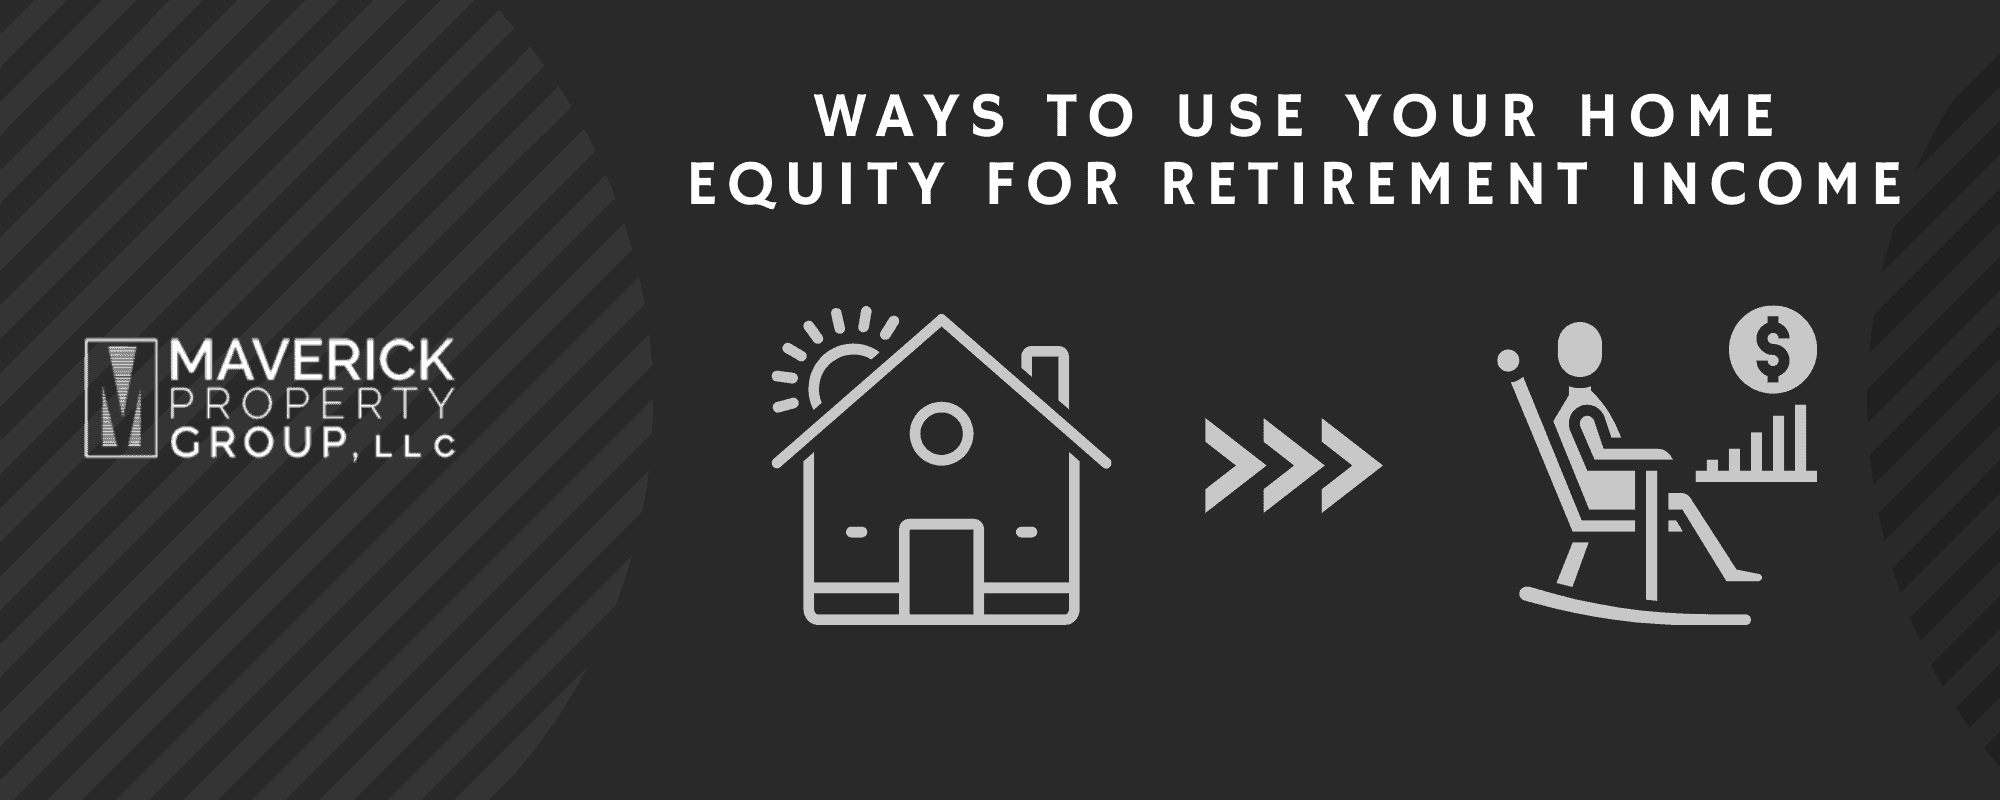 Home Equity For Retirement Income